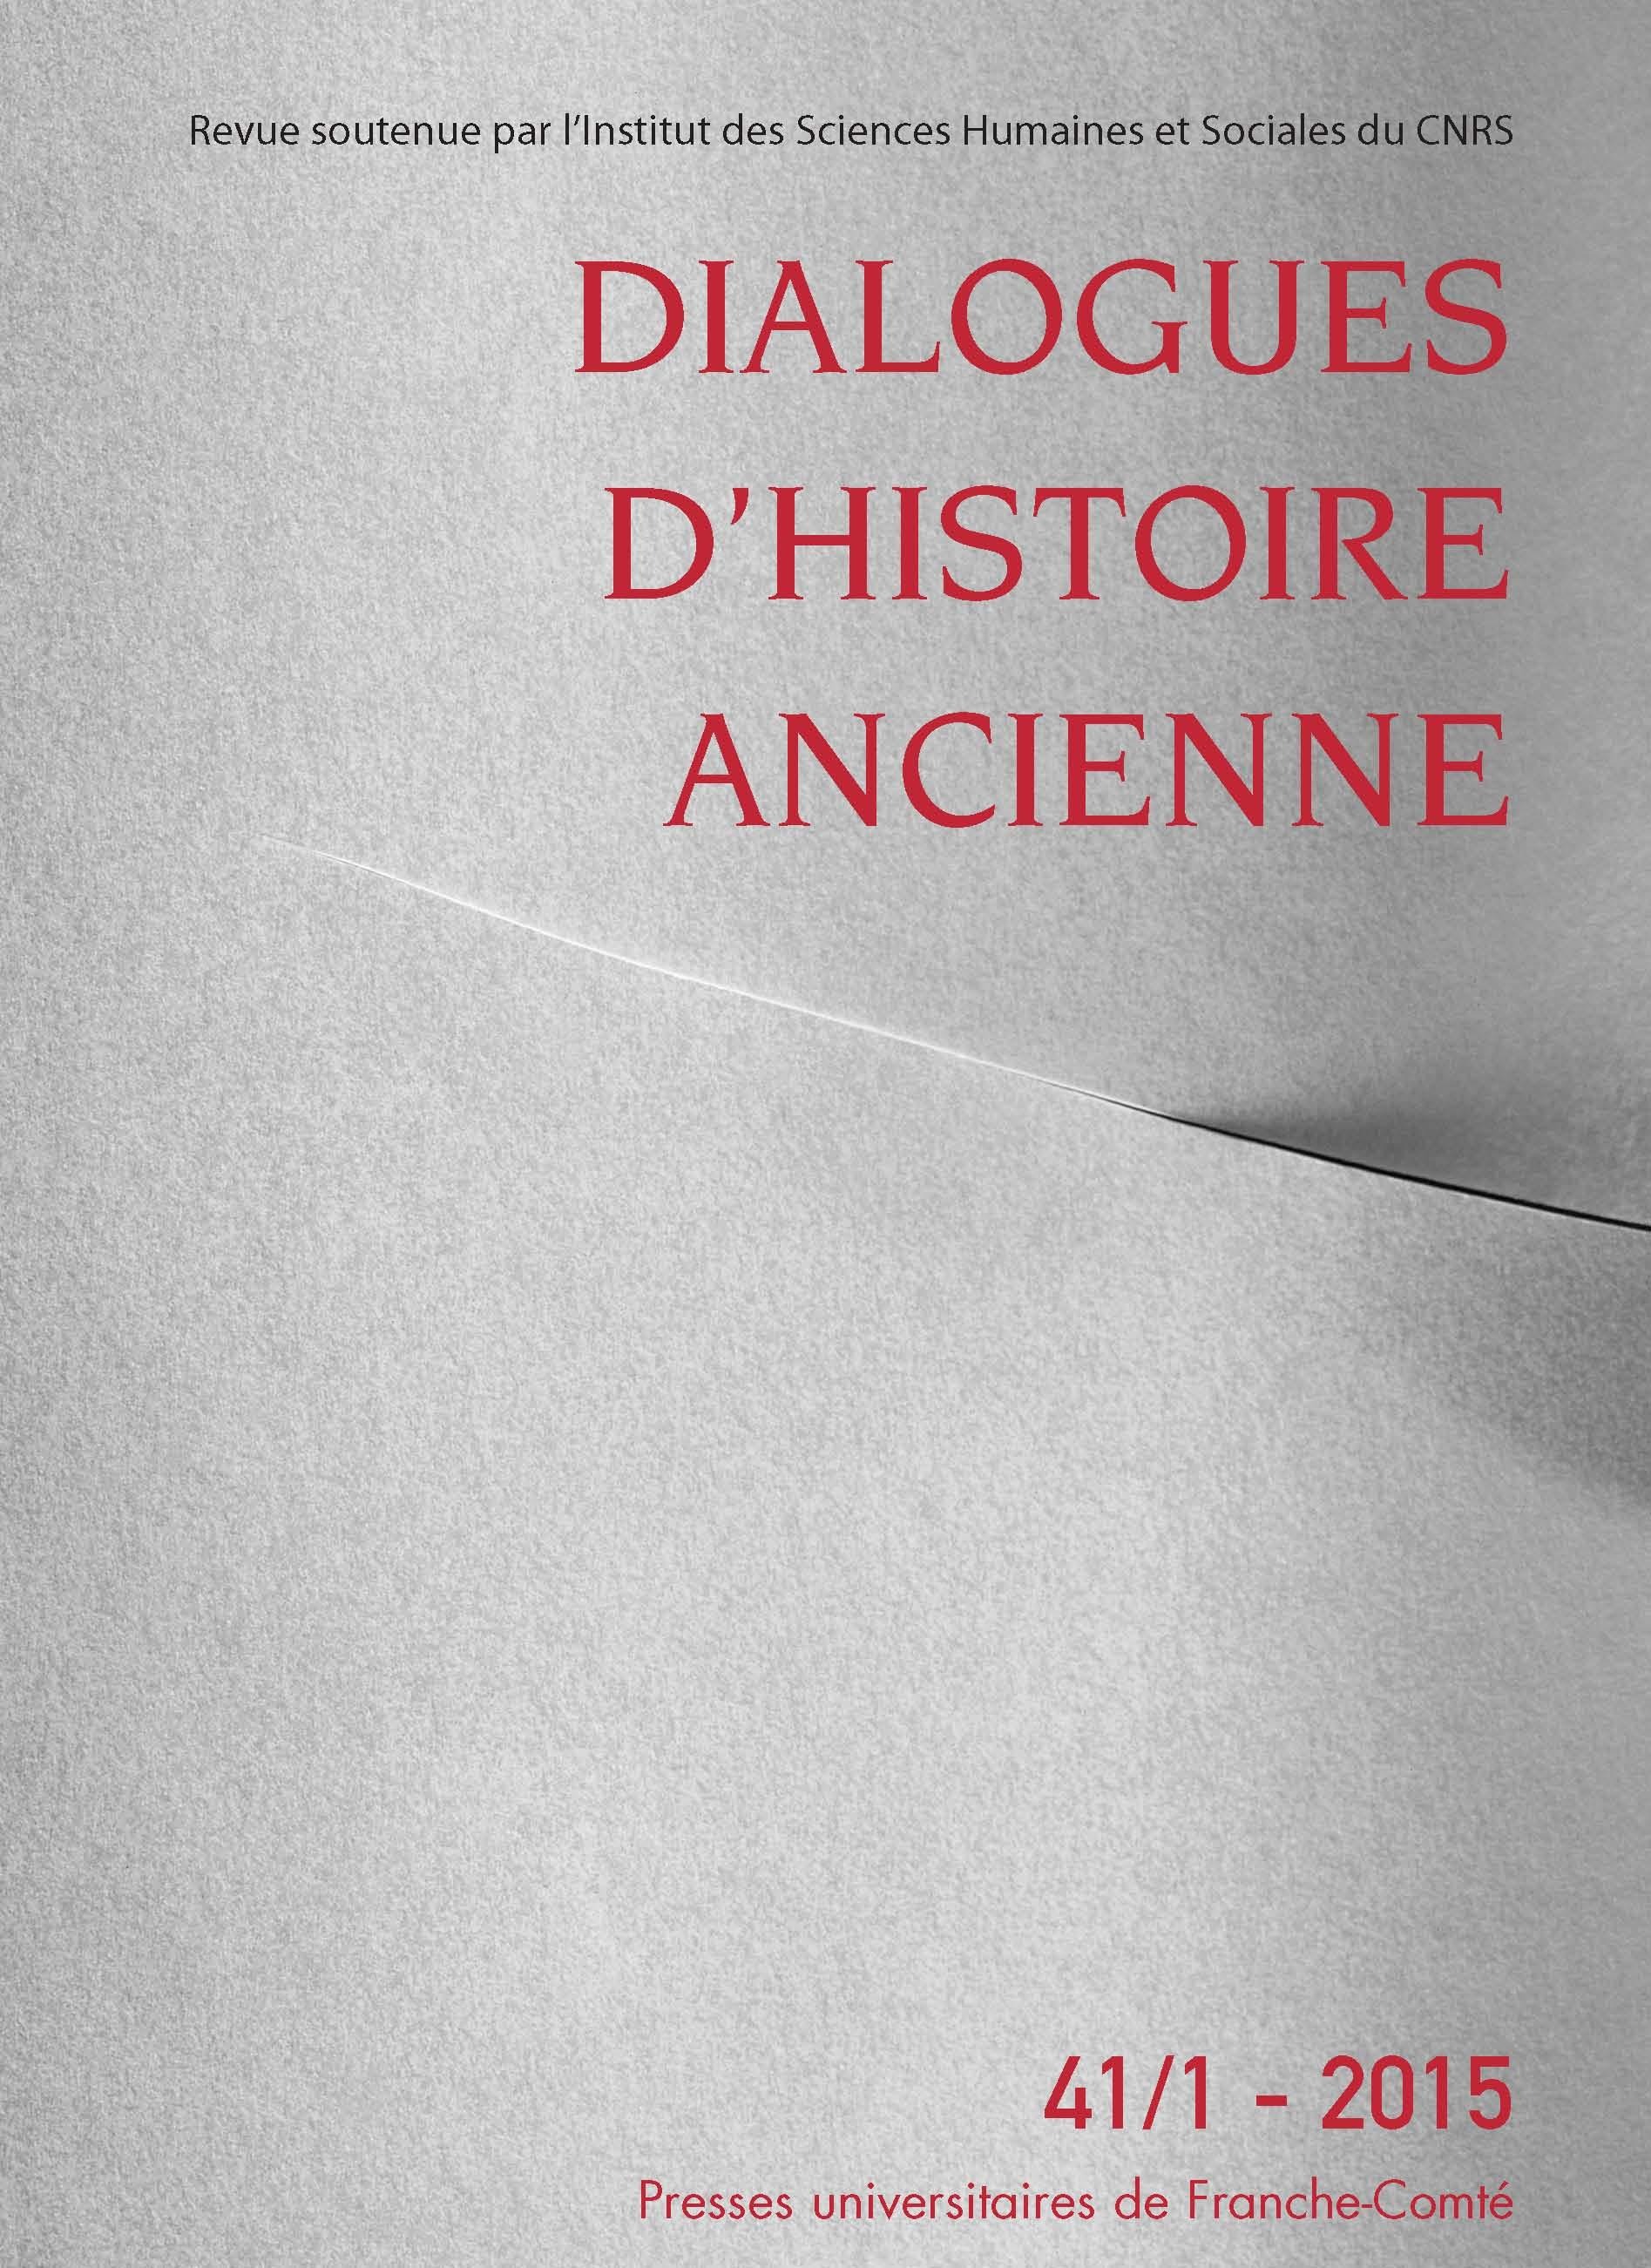 Avis Sur Le Site Home24 modernist concerns and greek and latin culture: thomas s